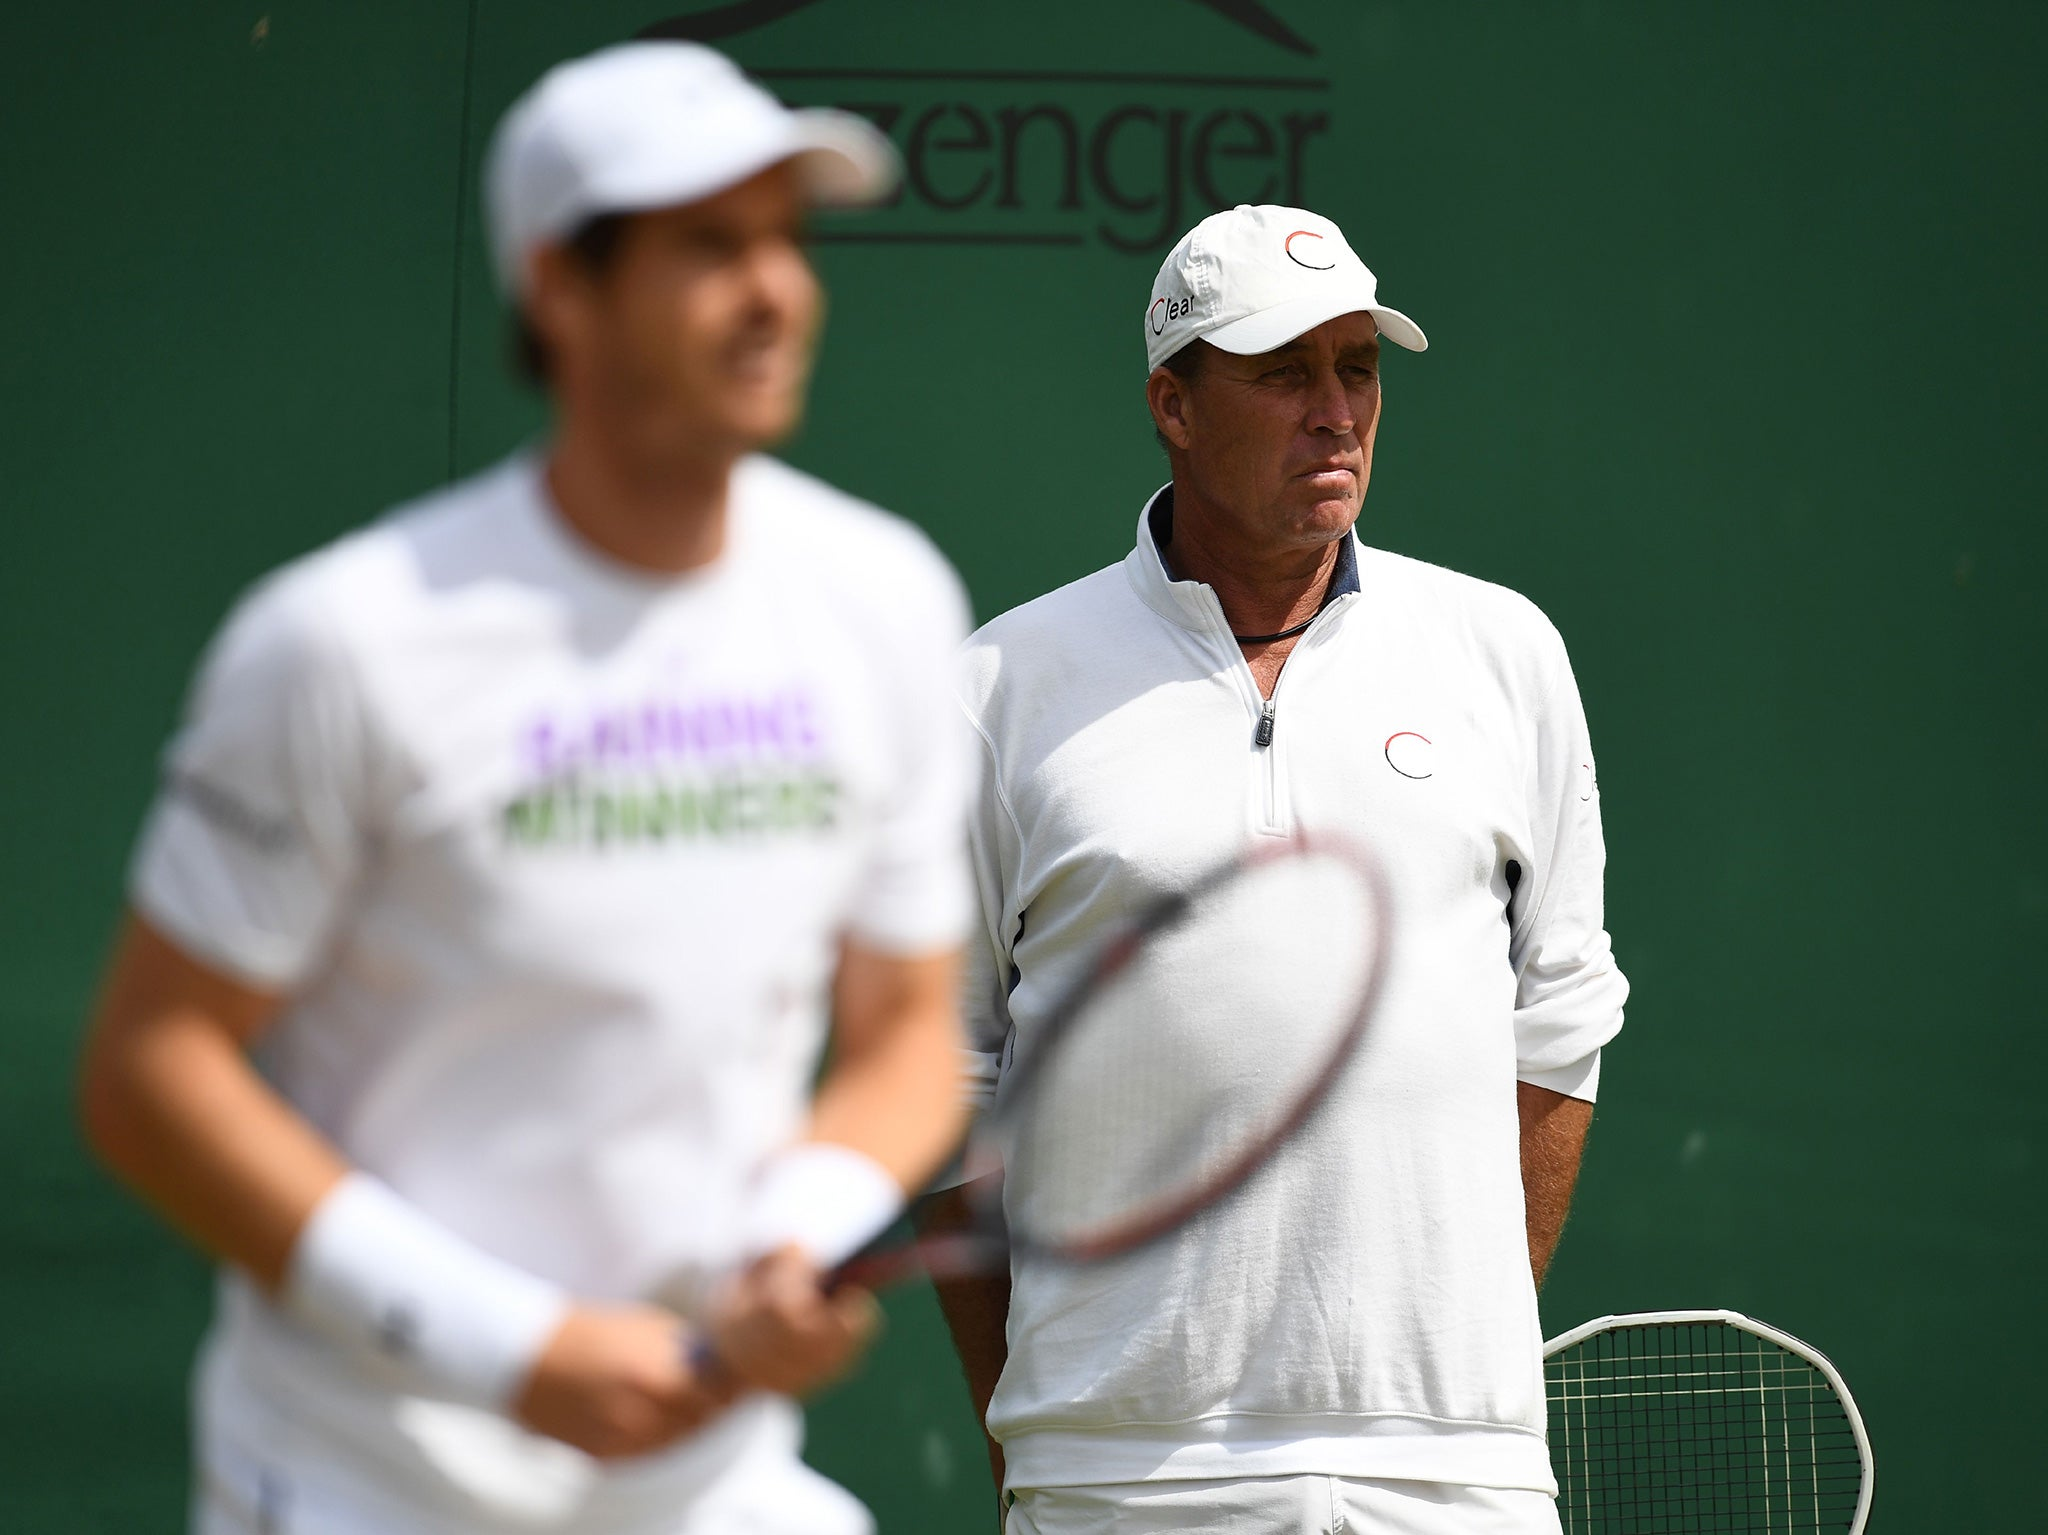 Wimbledon 2016 Ivan Lendl s influence is starting to tell on Andy